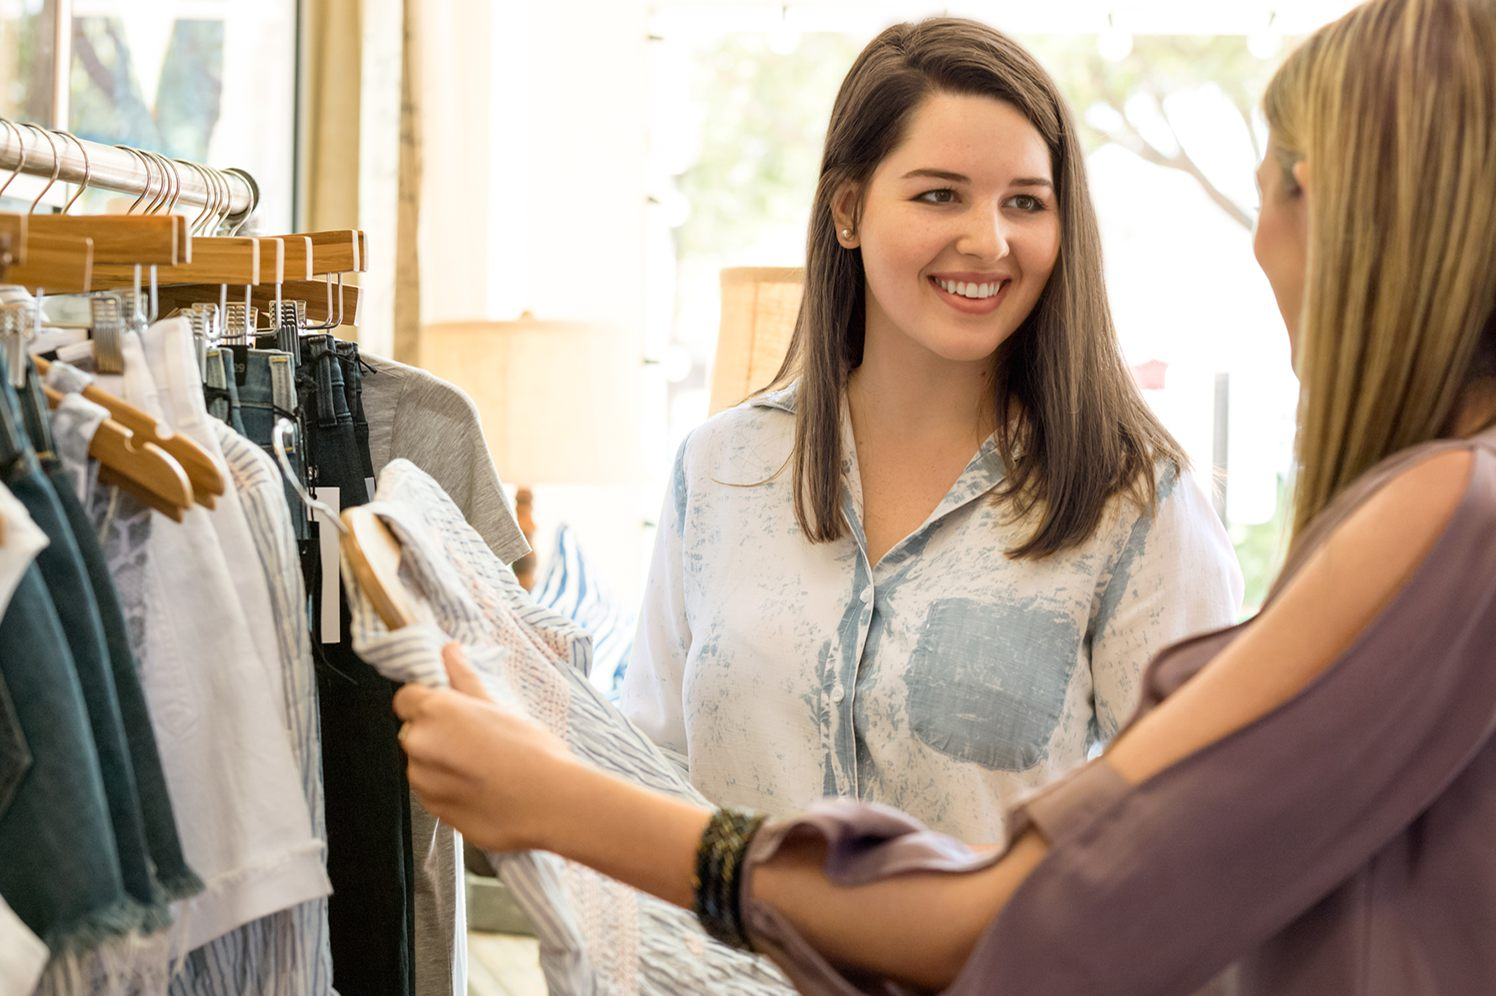 woman with customer at retail store